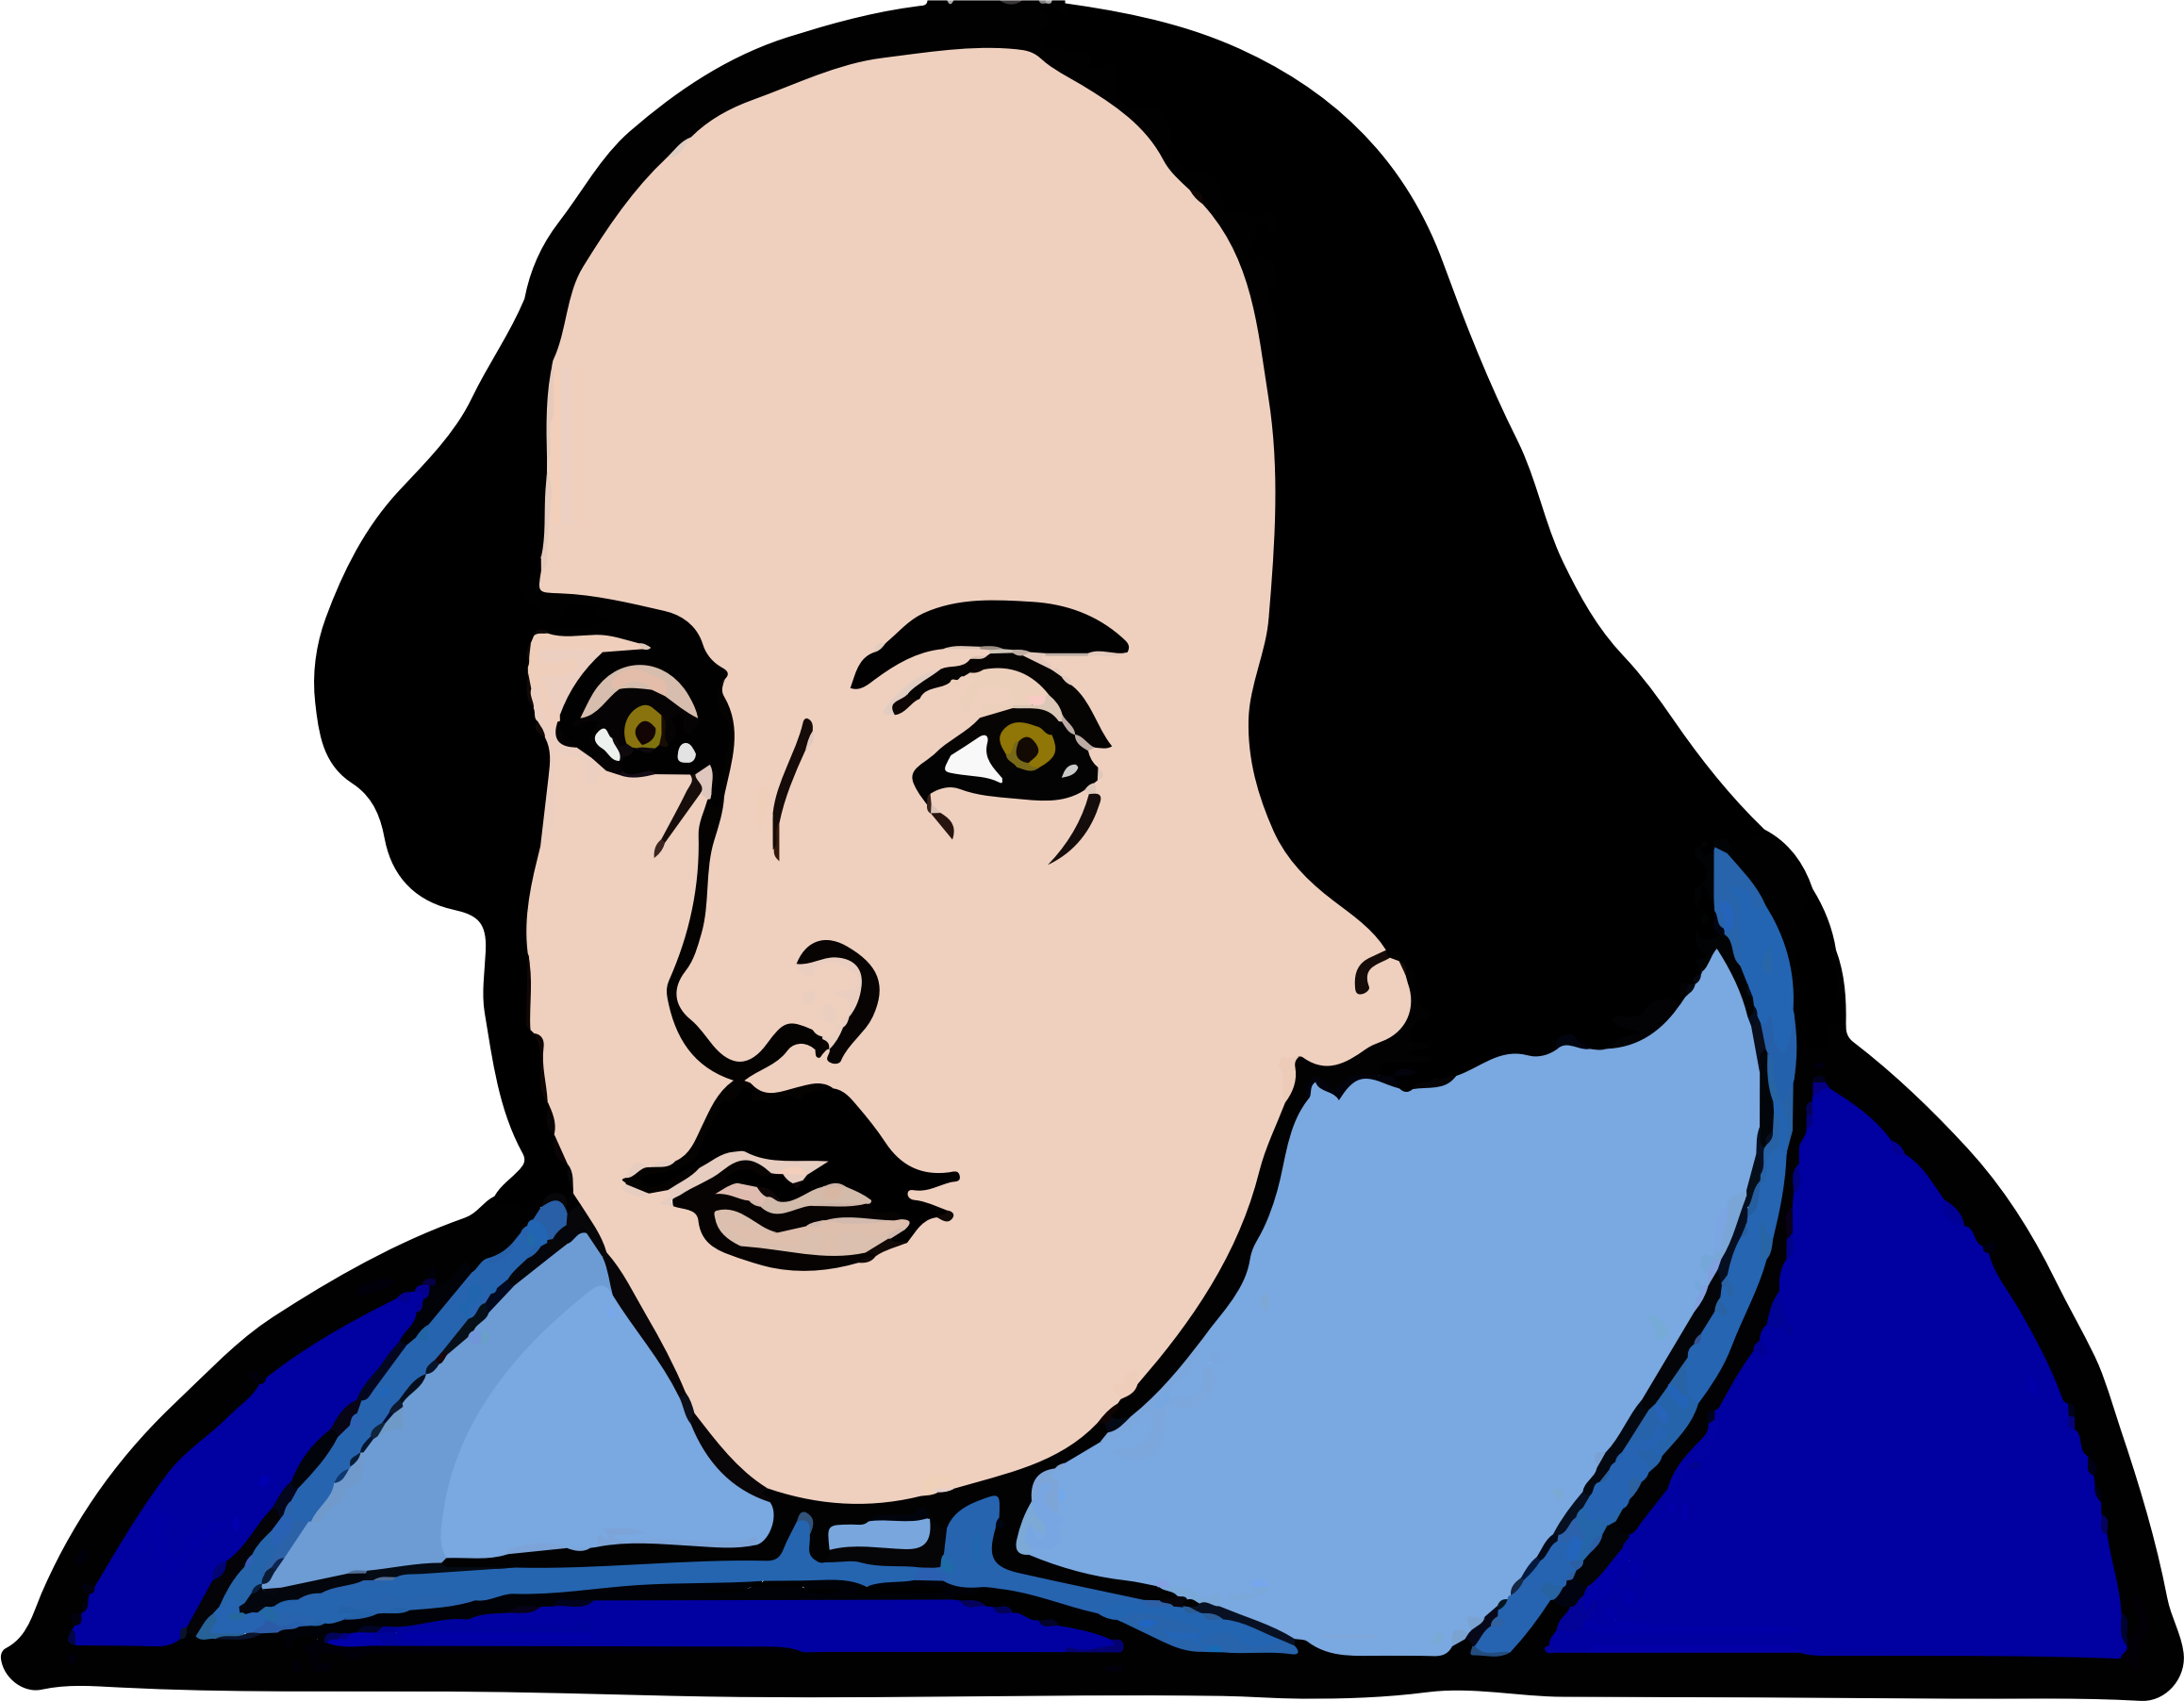 william shakespeare by cactus cowboy